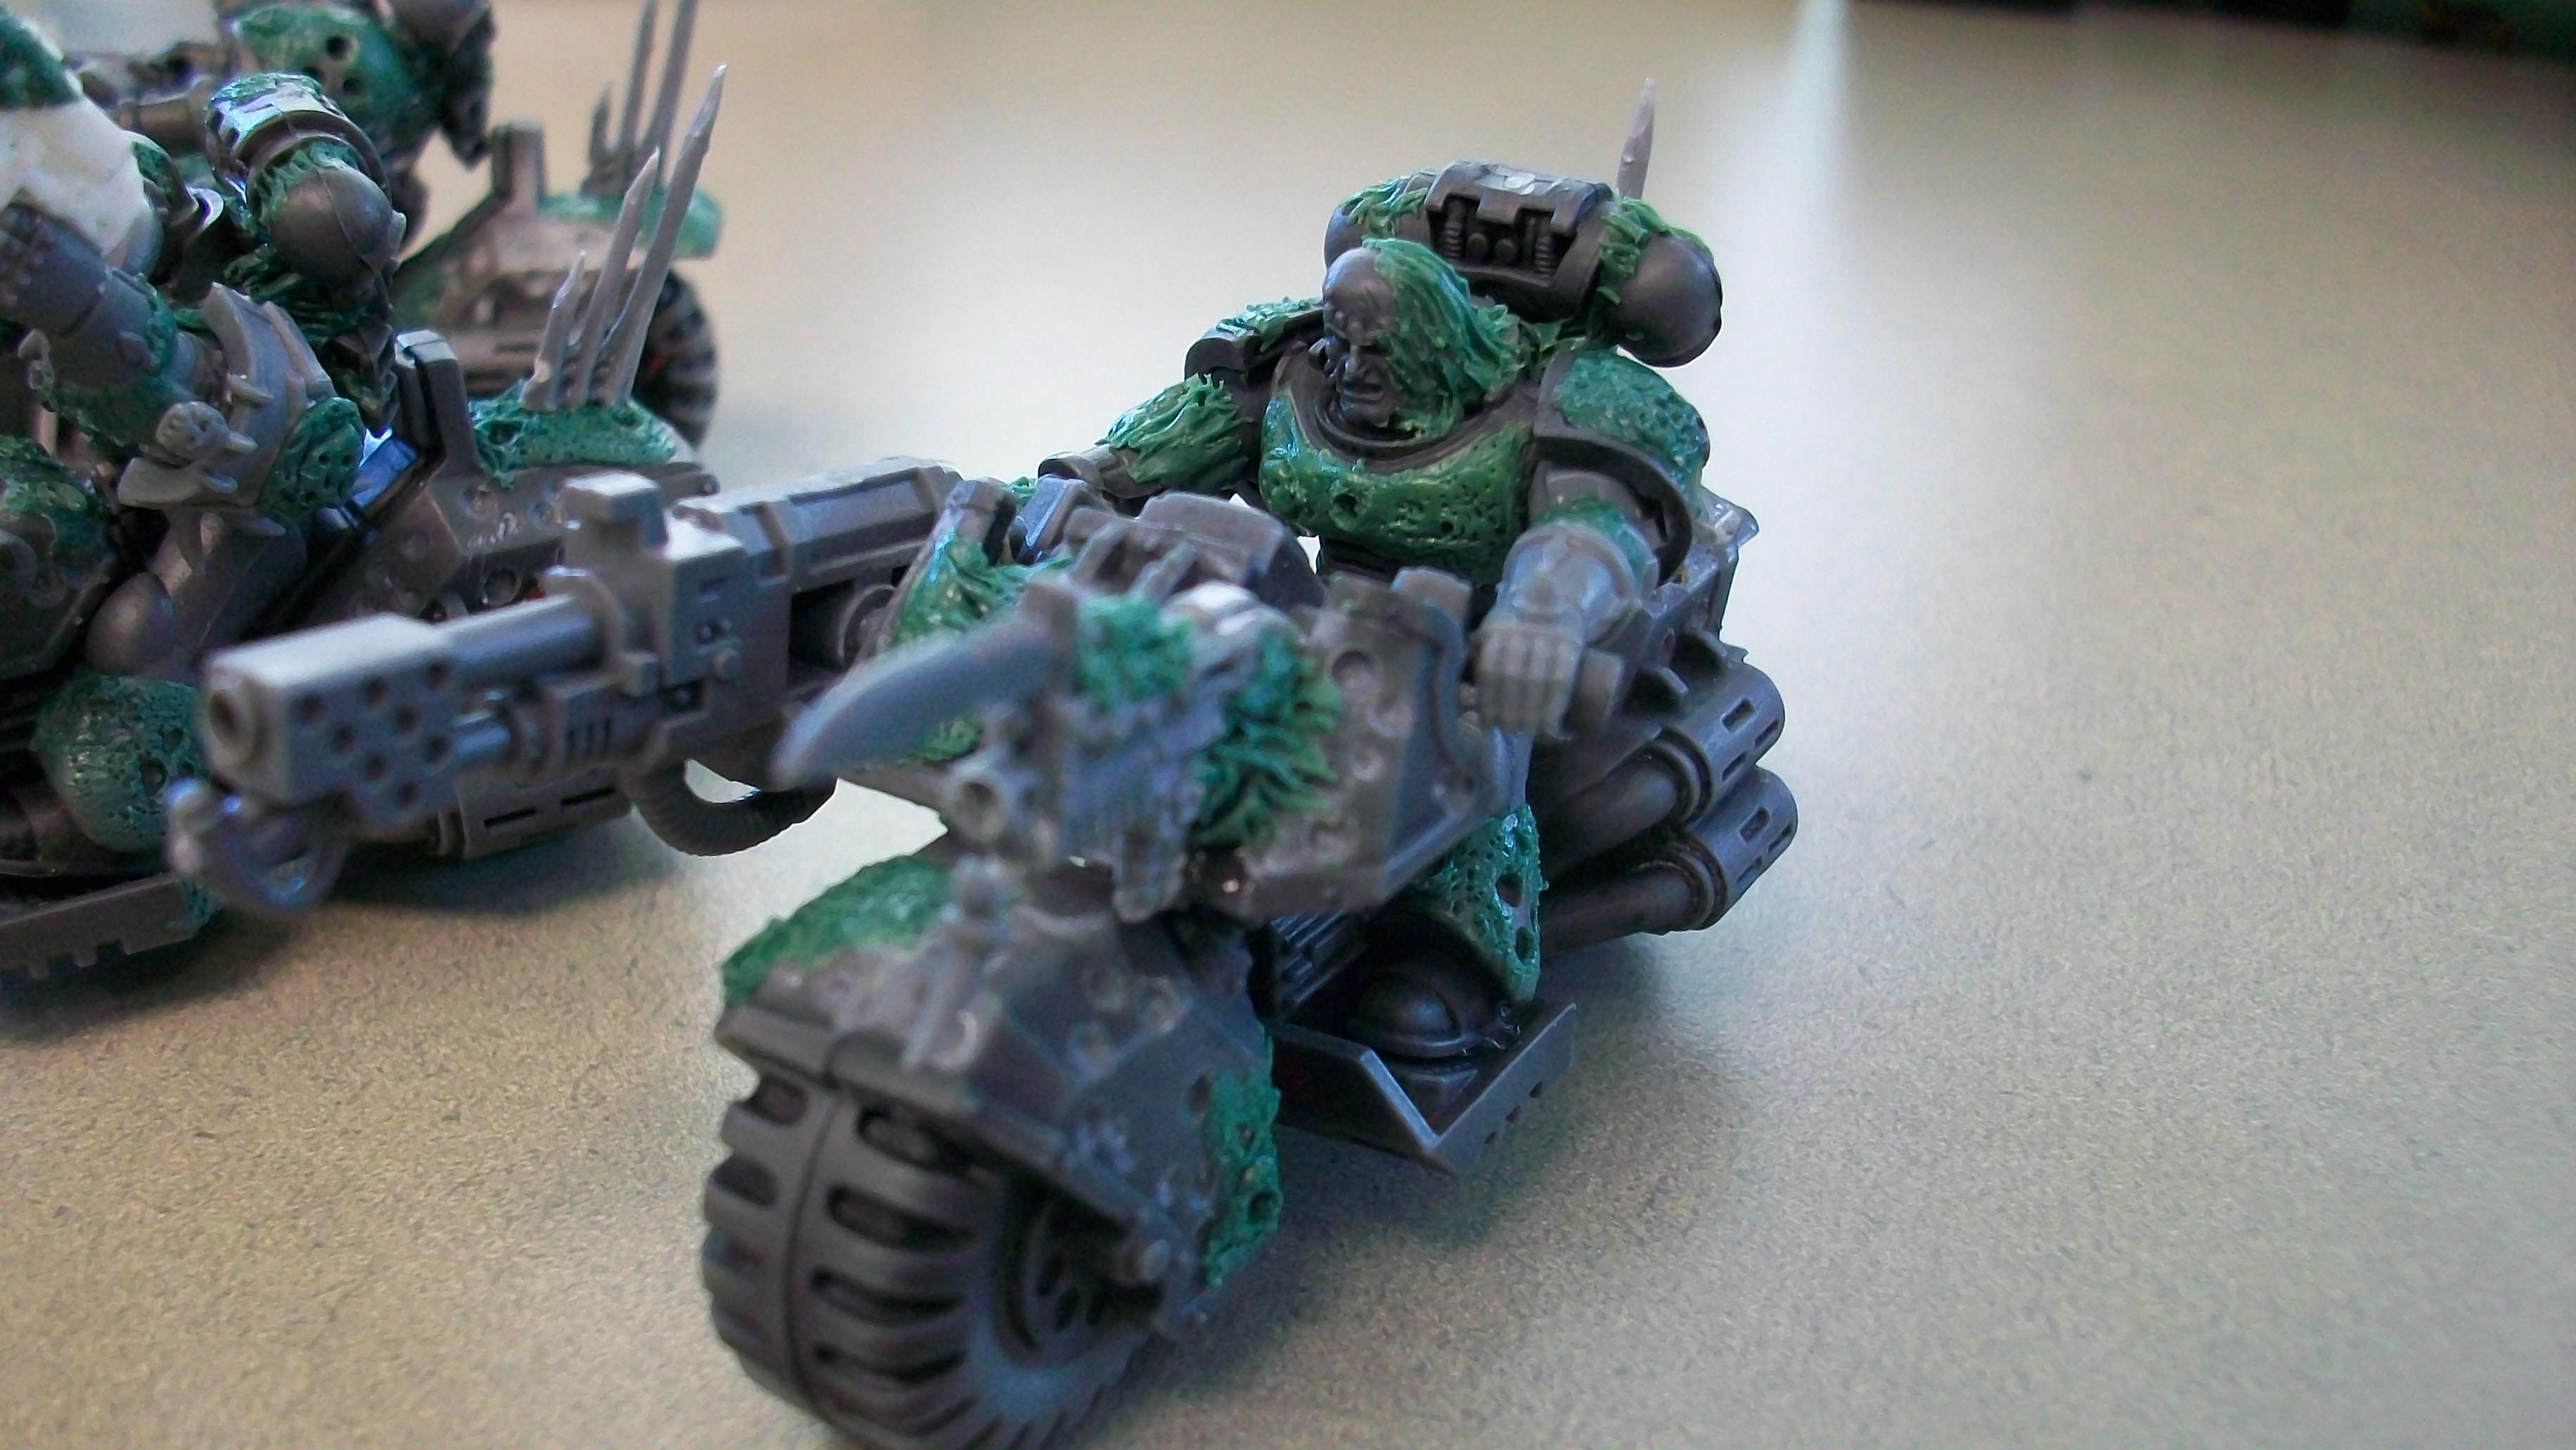 Bike, Chaos, Comversion, Custom, Flamer, Greenstuff, Meltagun, Nurgle, Scout Bike, Scouts, Space Marines, Work In Progress